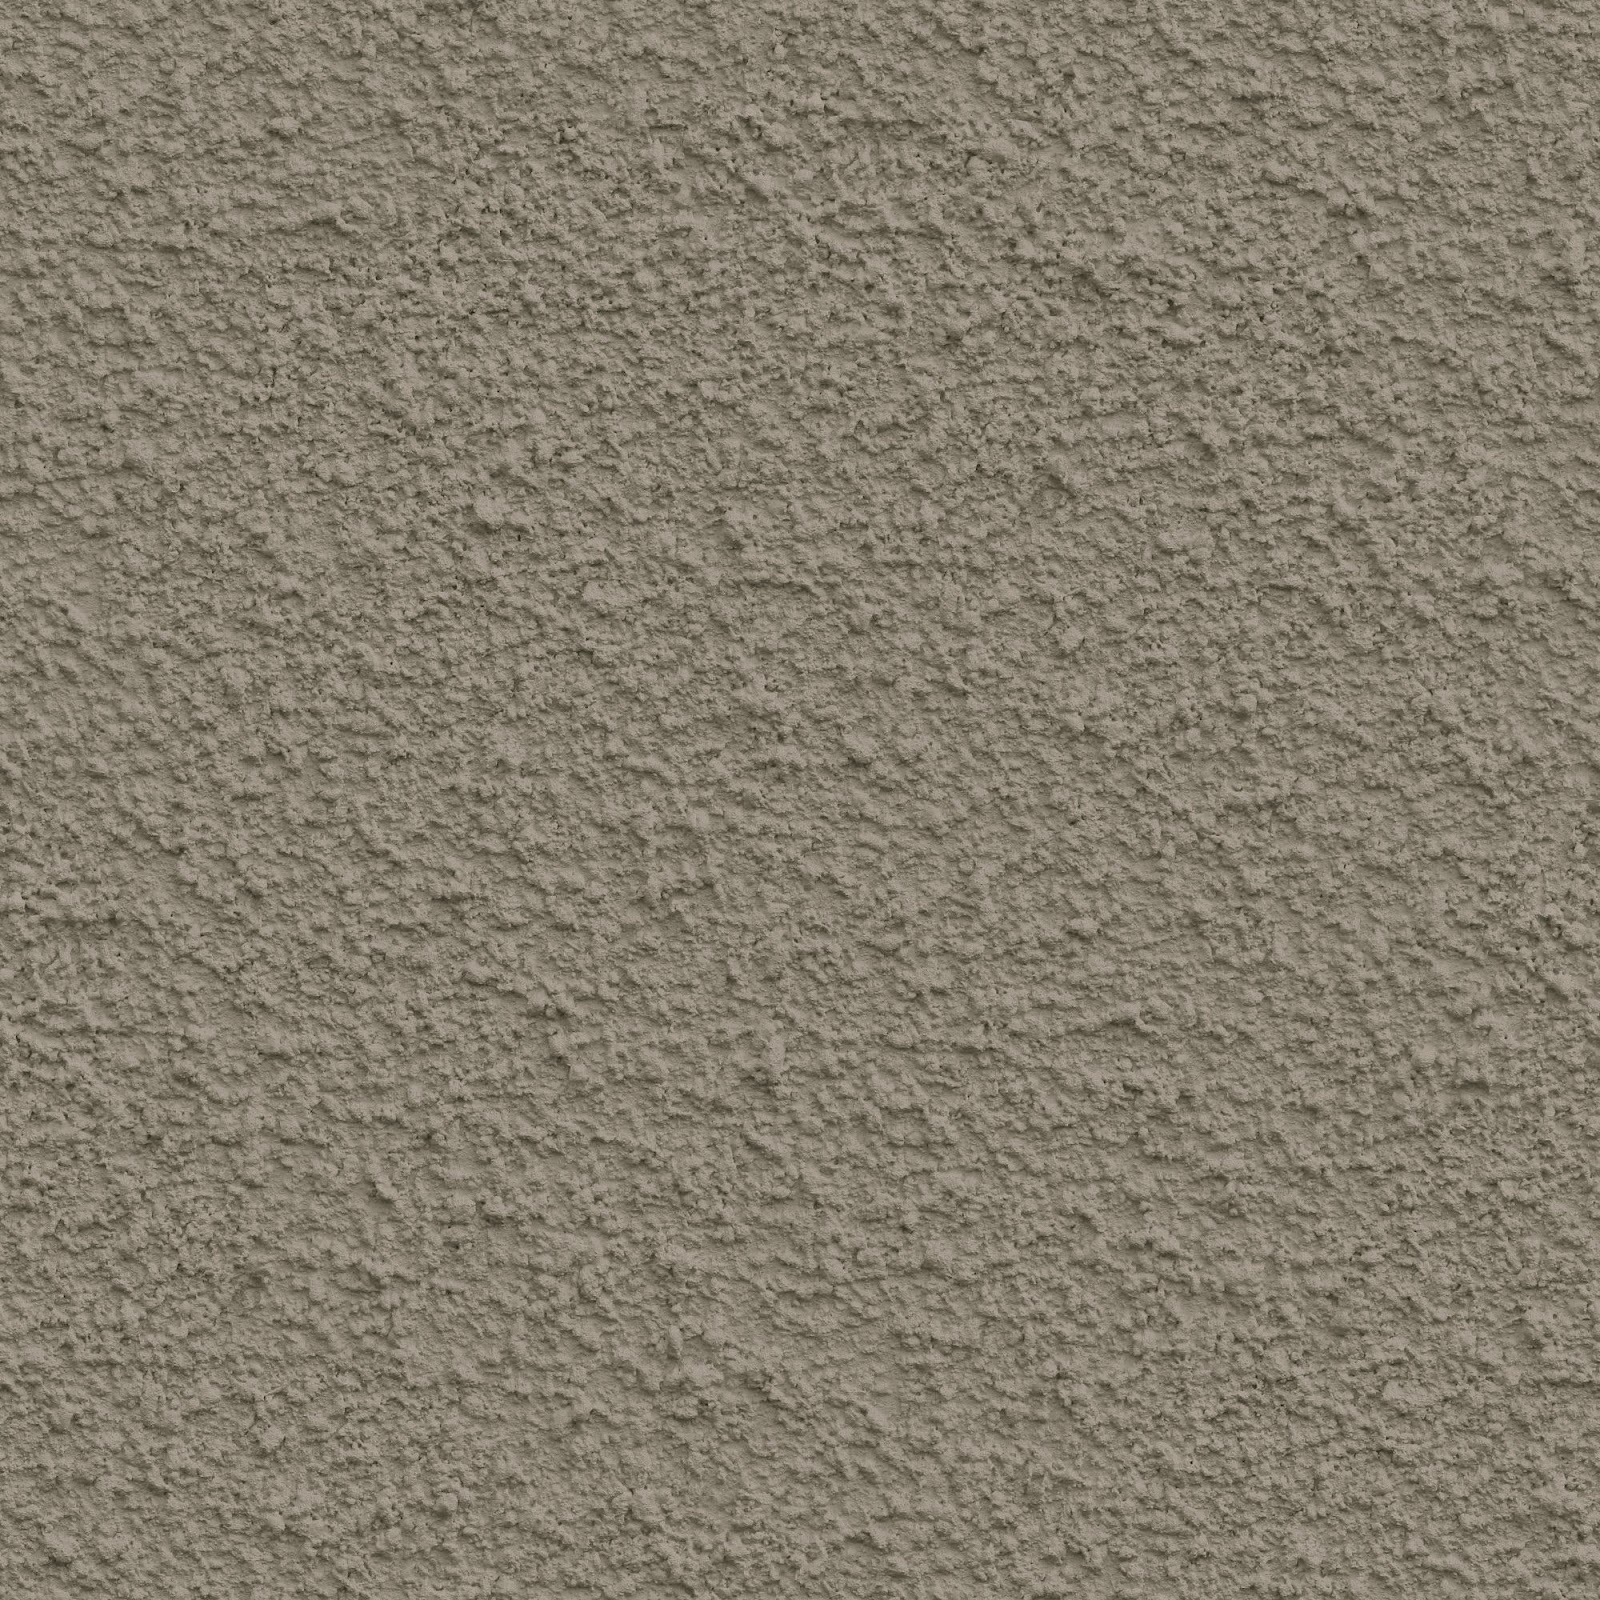 High Resolution Seamless Textures Tileable Stucco Wall Texture 16